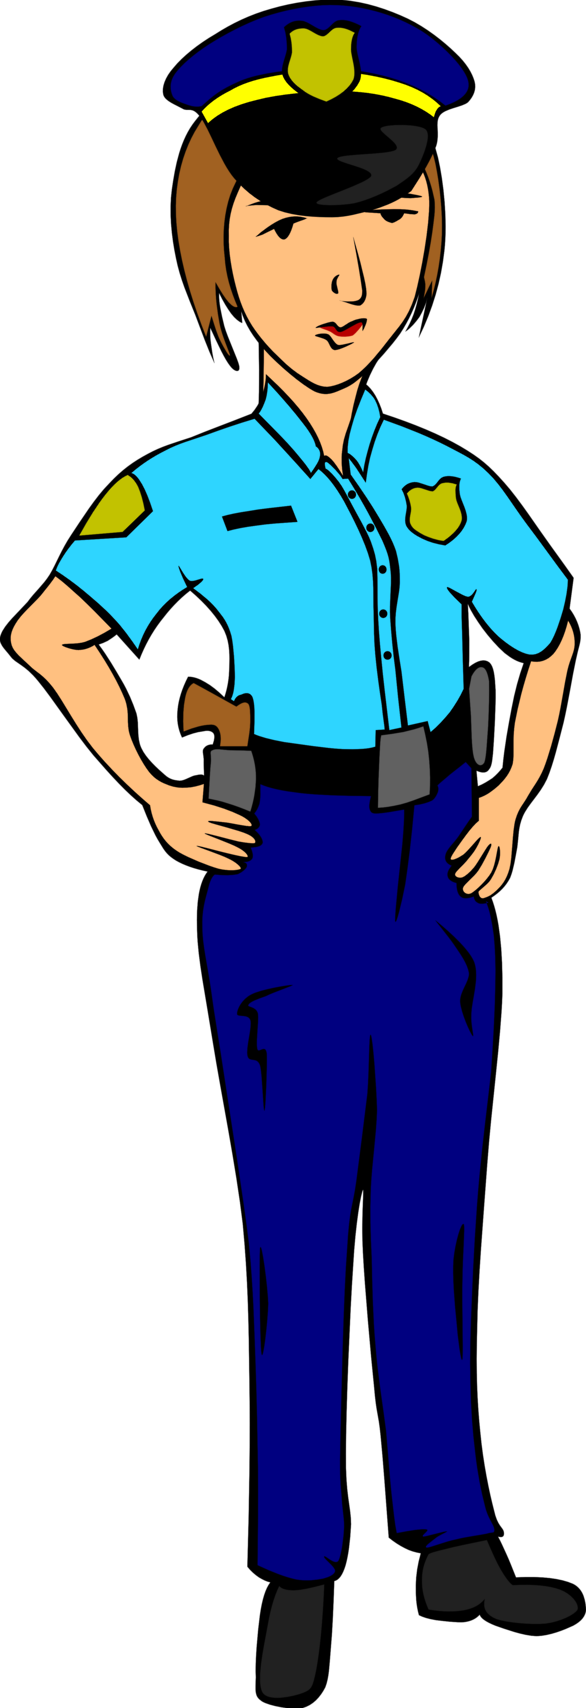 Policewoman clipart graphic library download Free Police Cliparts, Download Free Clip Art, Free Clip Art ... graphic library download